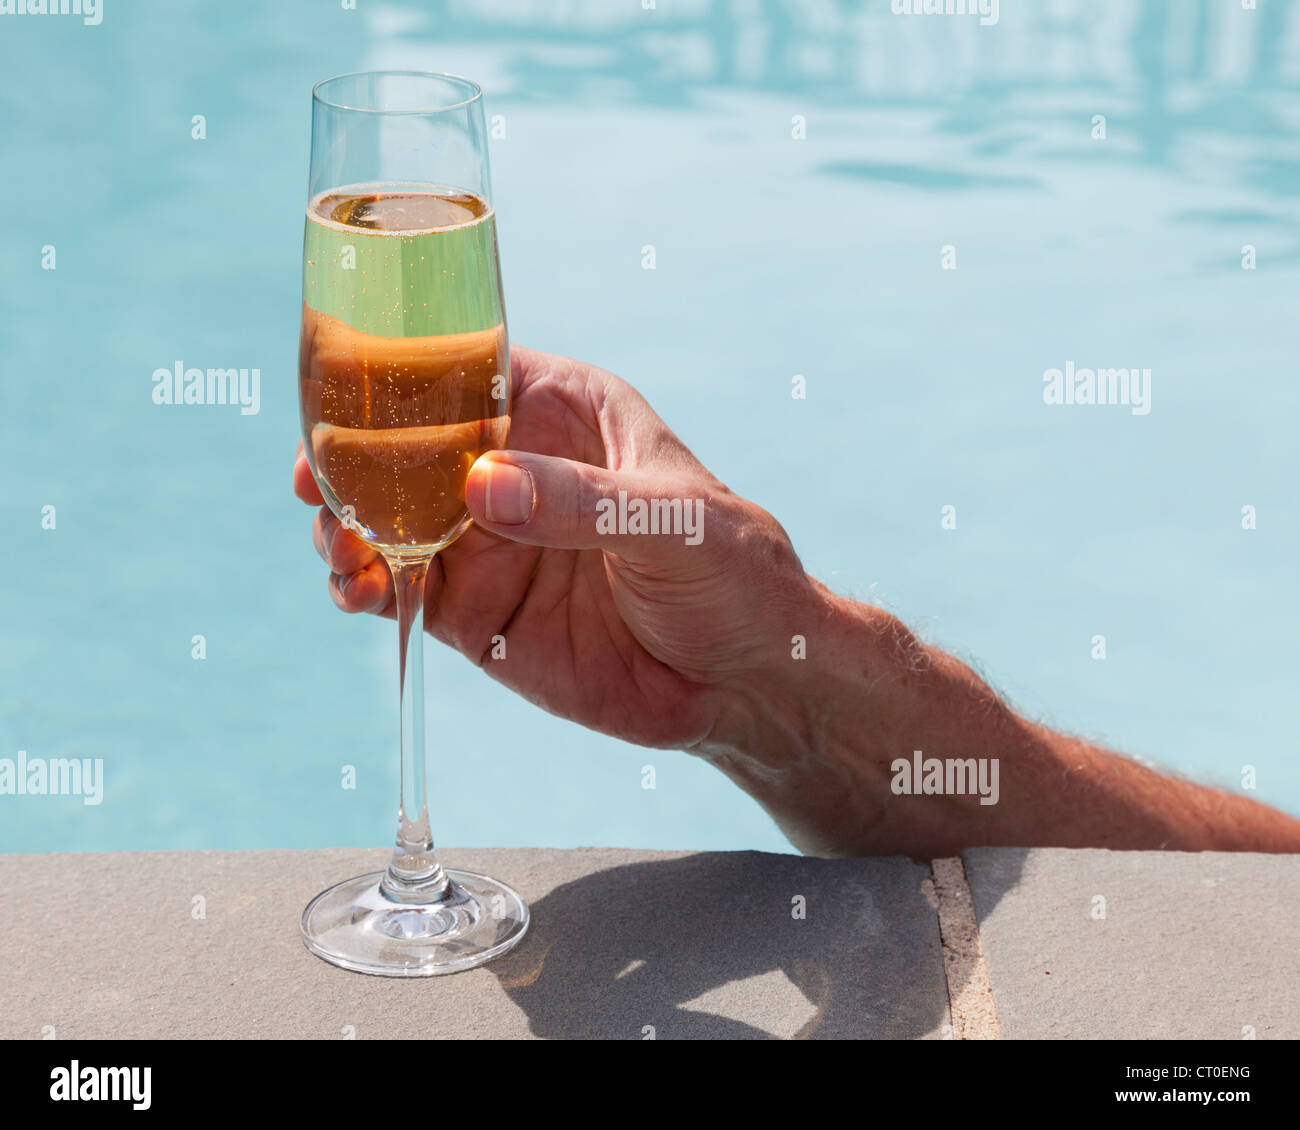 Man drinking champagne / wine while in the swimming pool - Stock Image